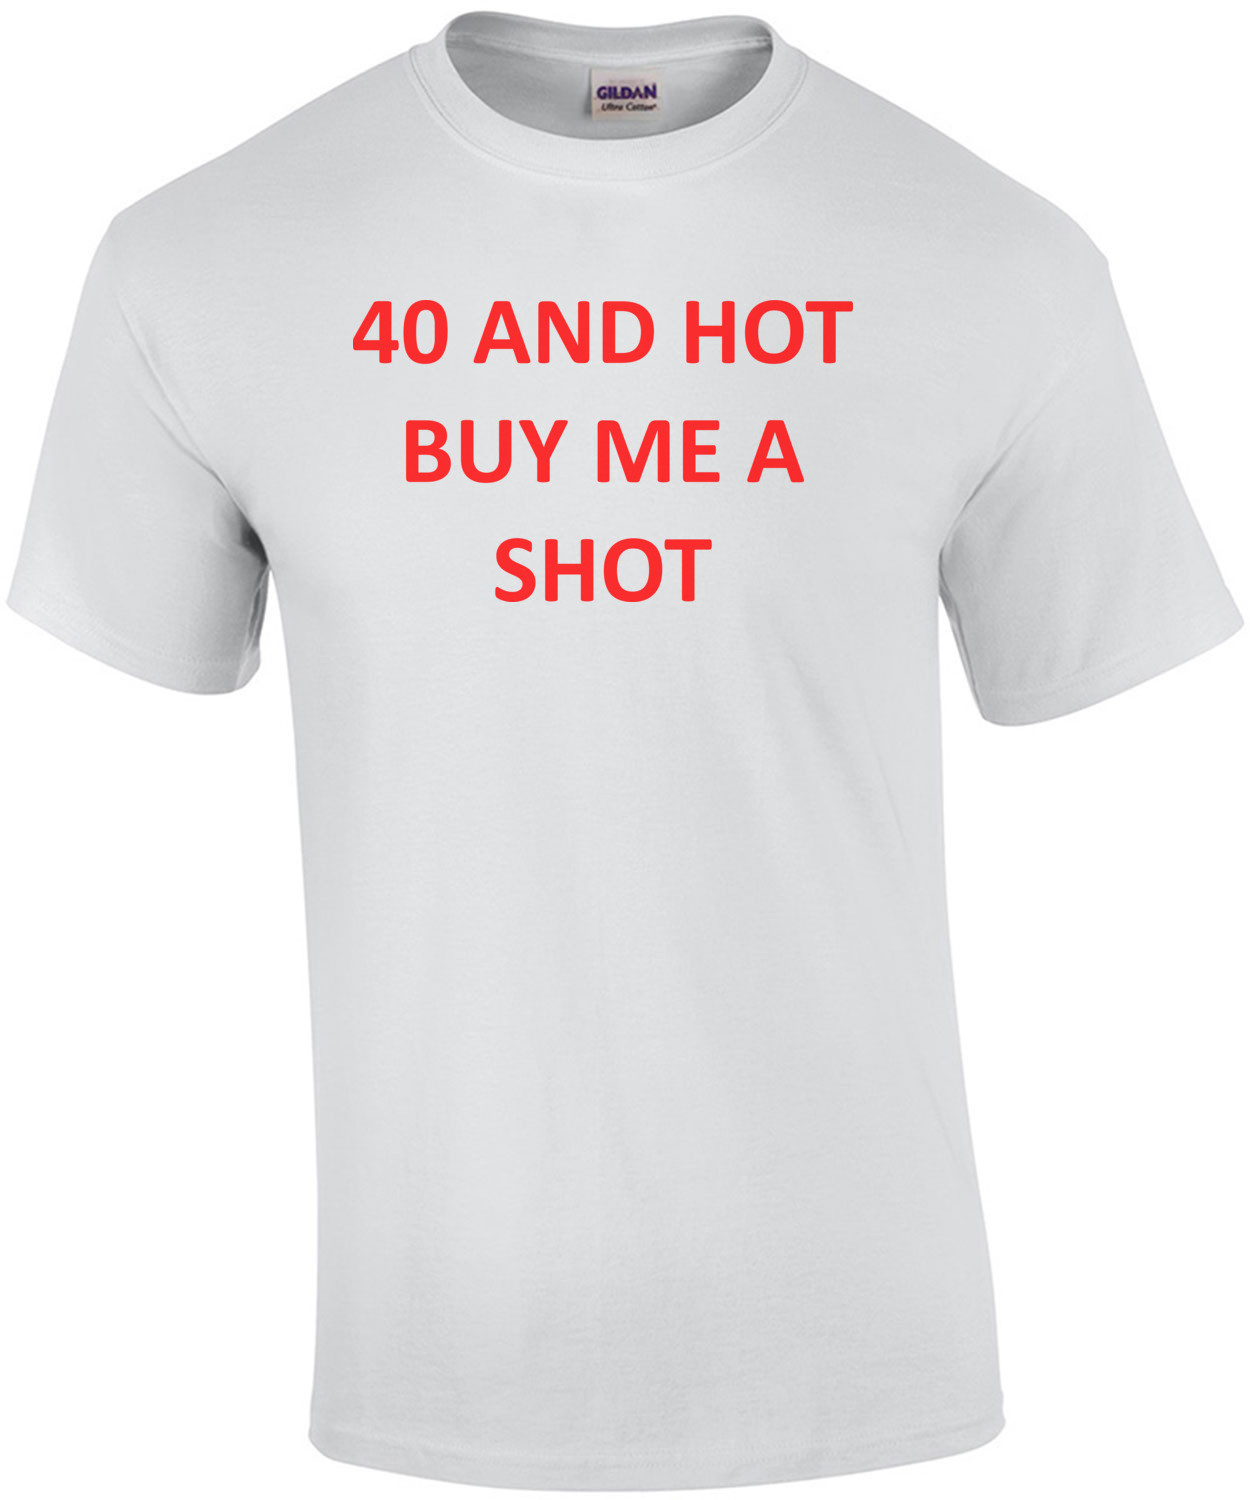 40 AND HOT BUY ME A SHOT - Happy Birthday Shirt